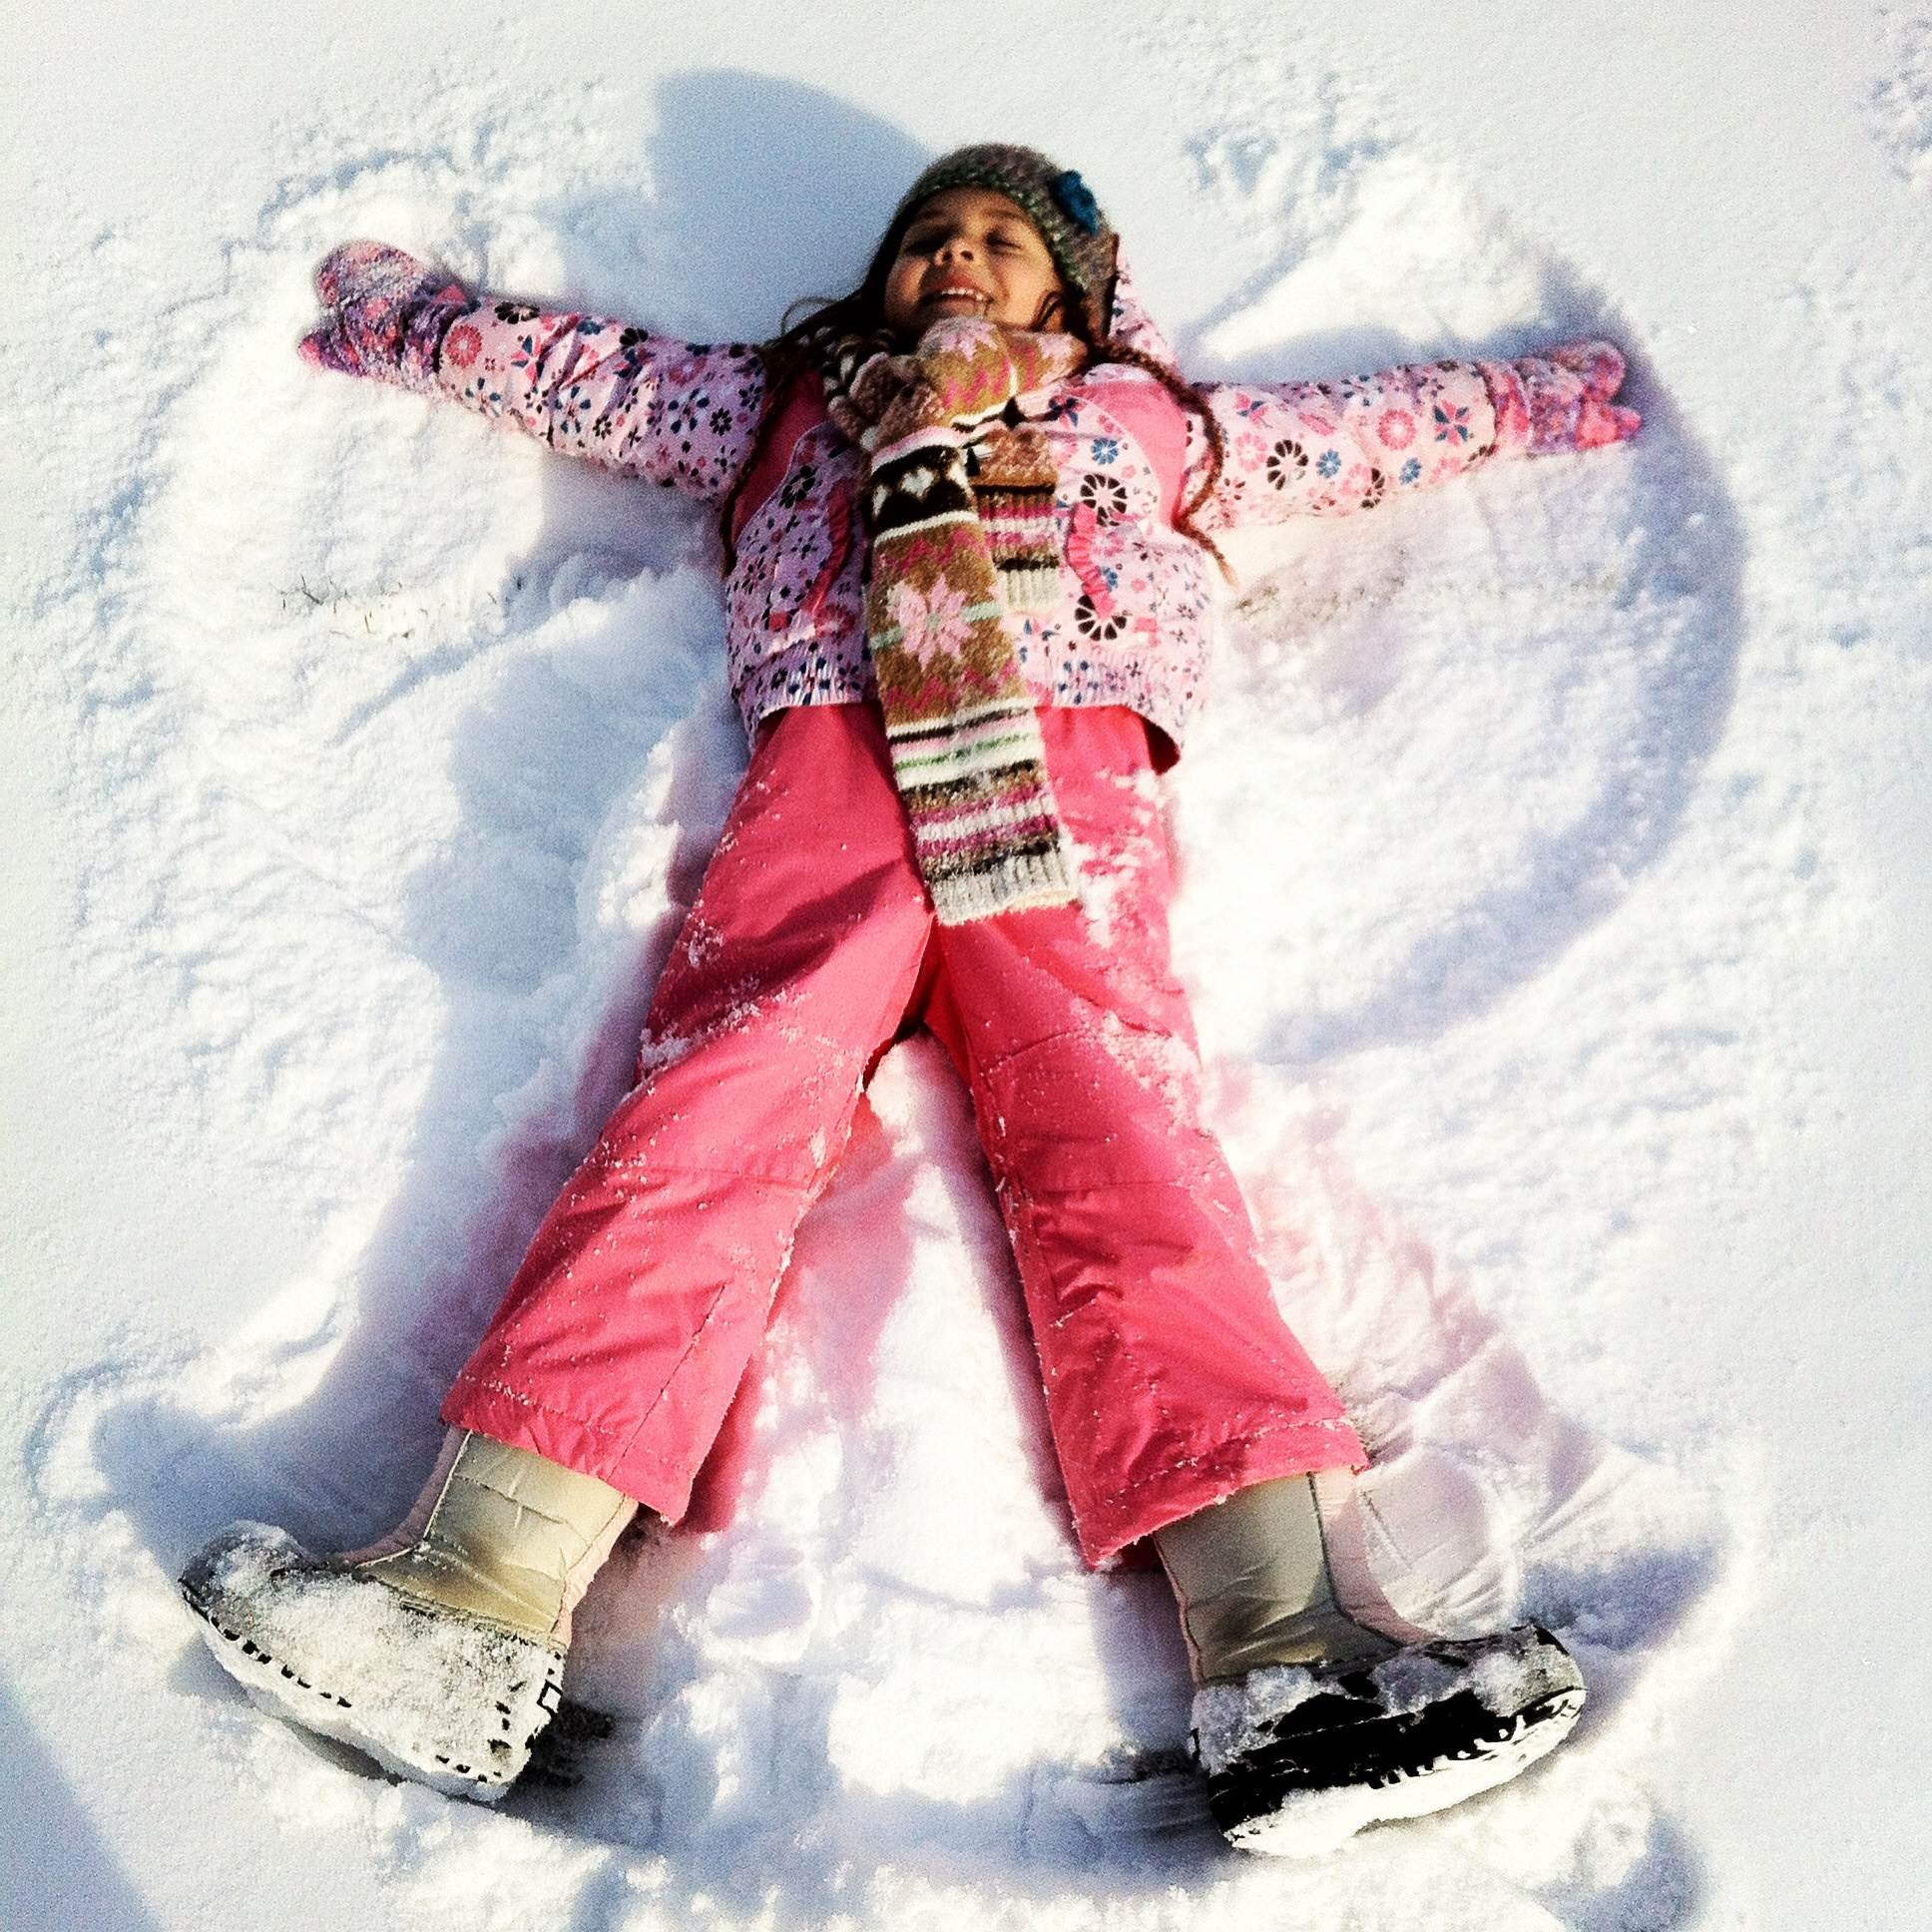 My daughter making a snow angel